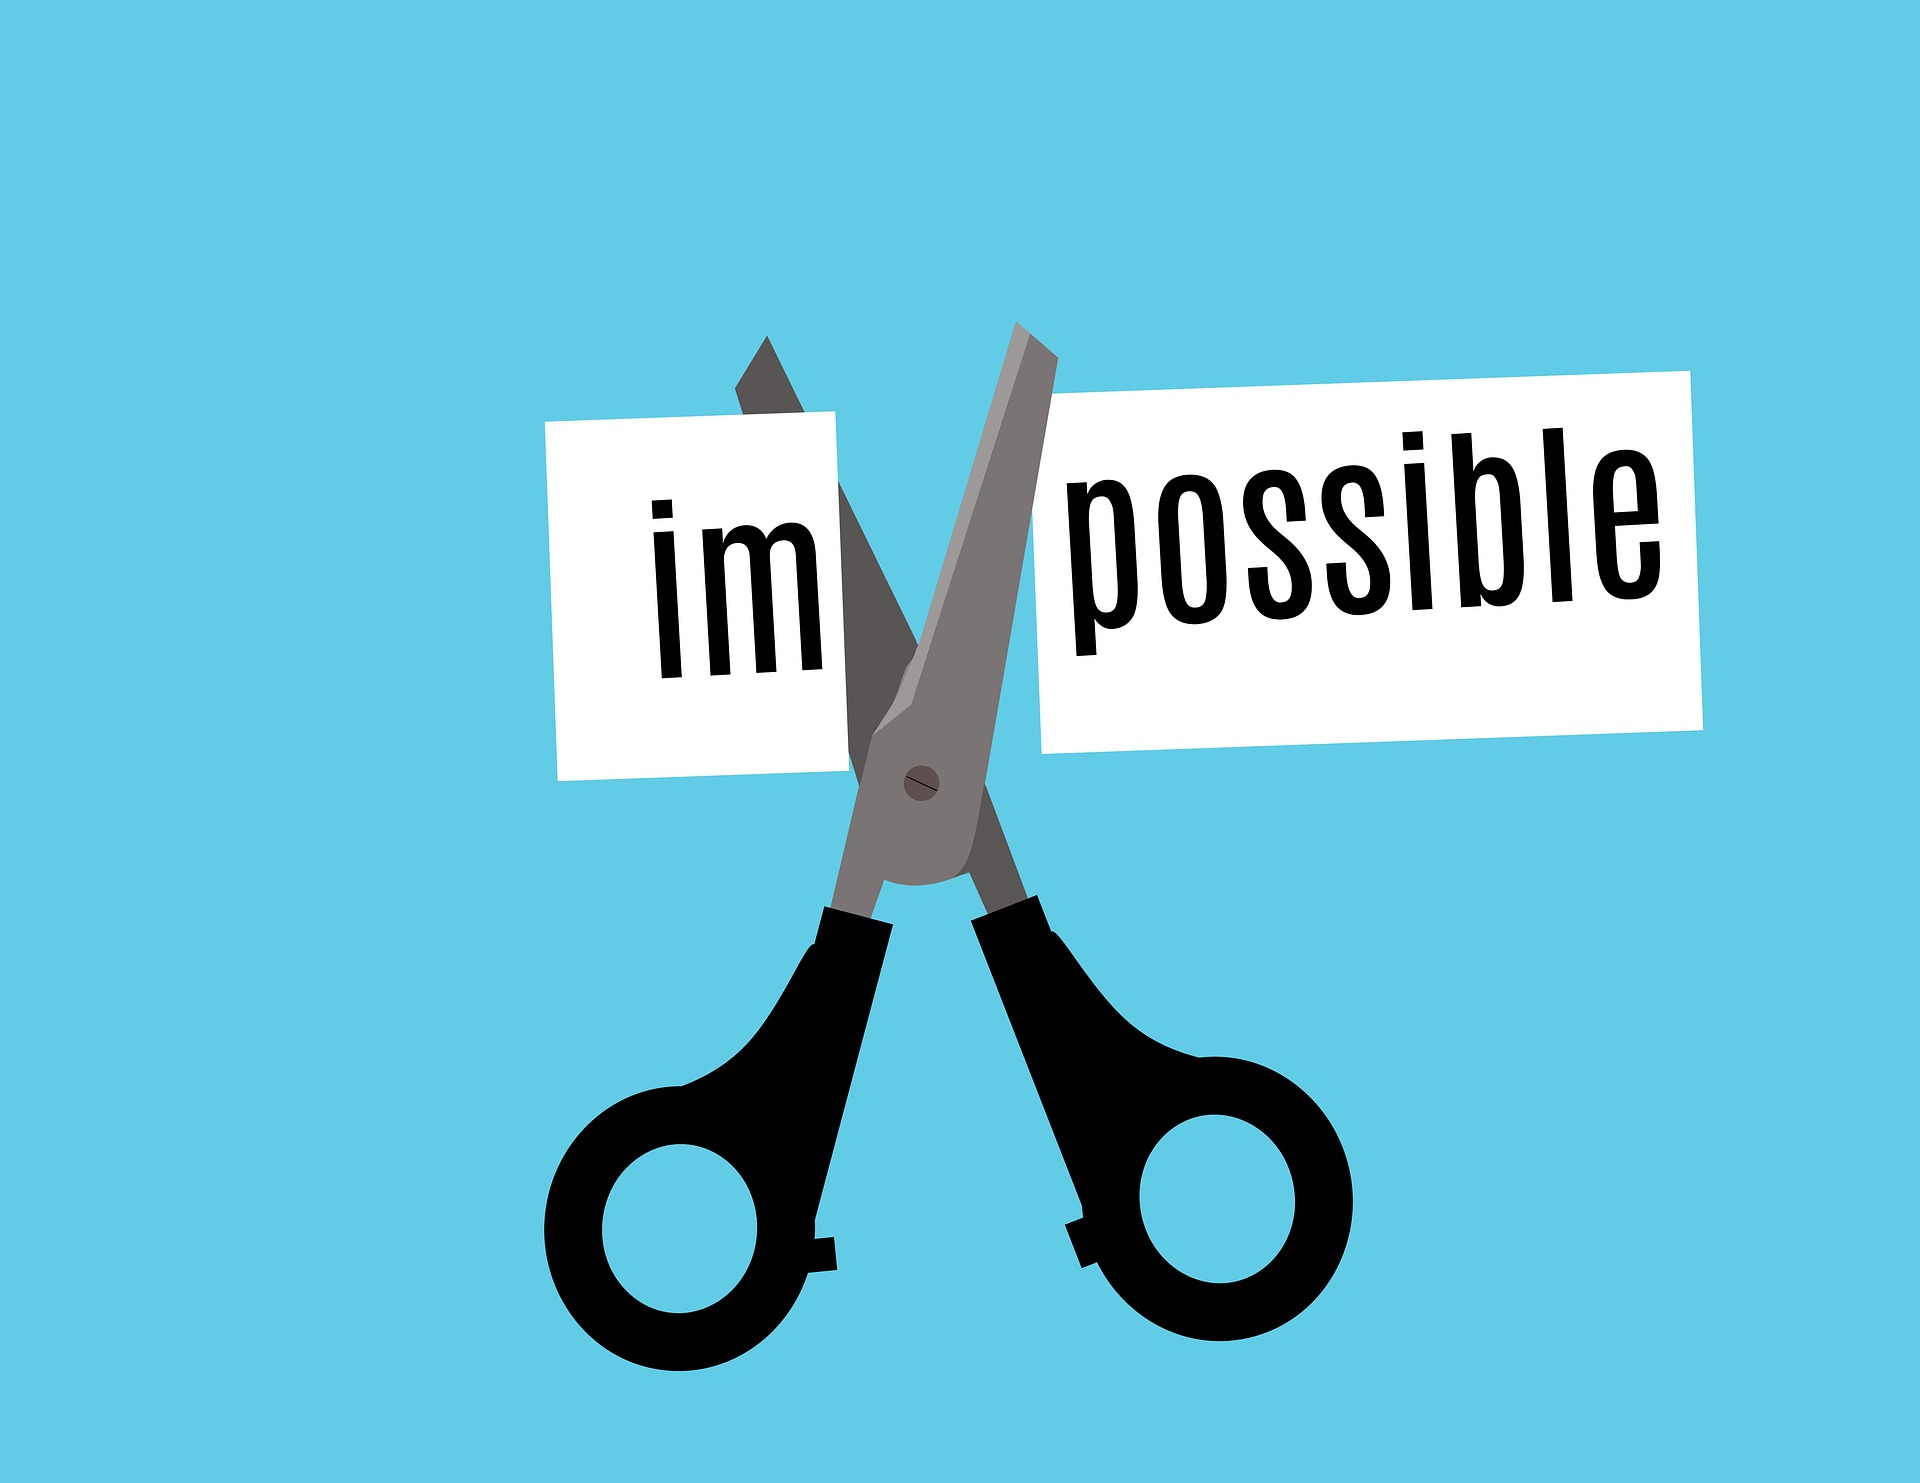 Alternatives For Selling Your Home with MJS Properties Making the impossible possible. Pair of scissors cutting im off of word impossible to make it possible